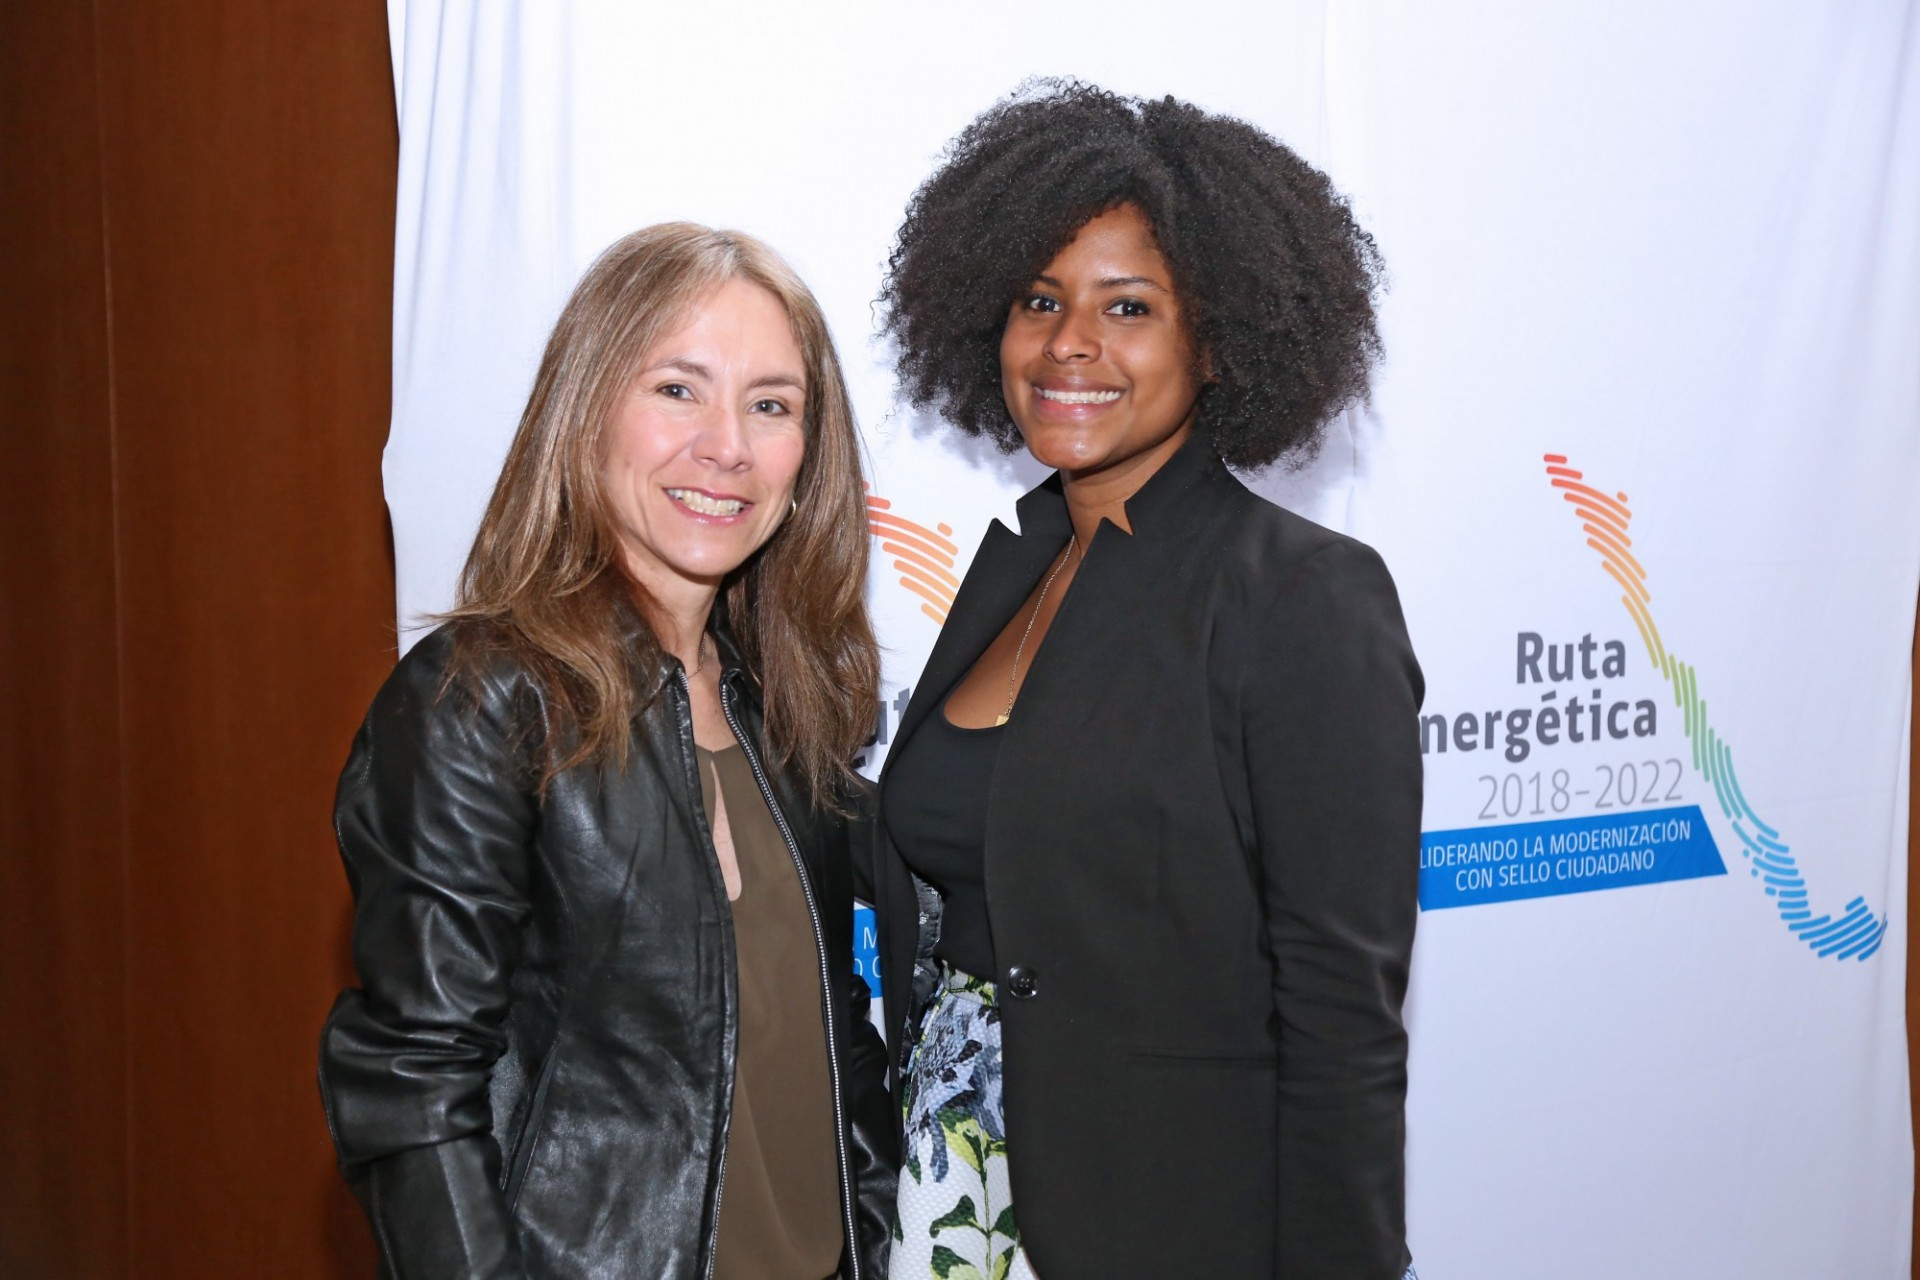 Susana Jiménez, Chile's Minister of Energy, and Jully Meriño, director of the Women in Energy Program at Columbia